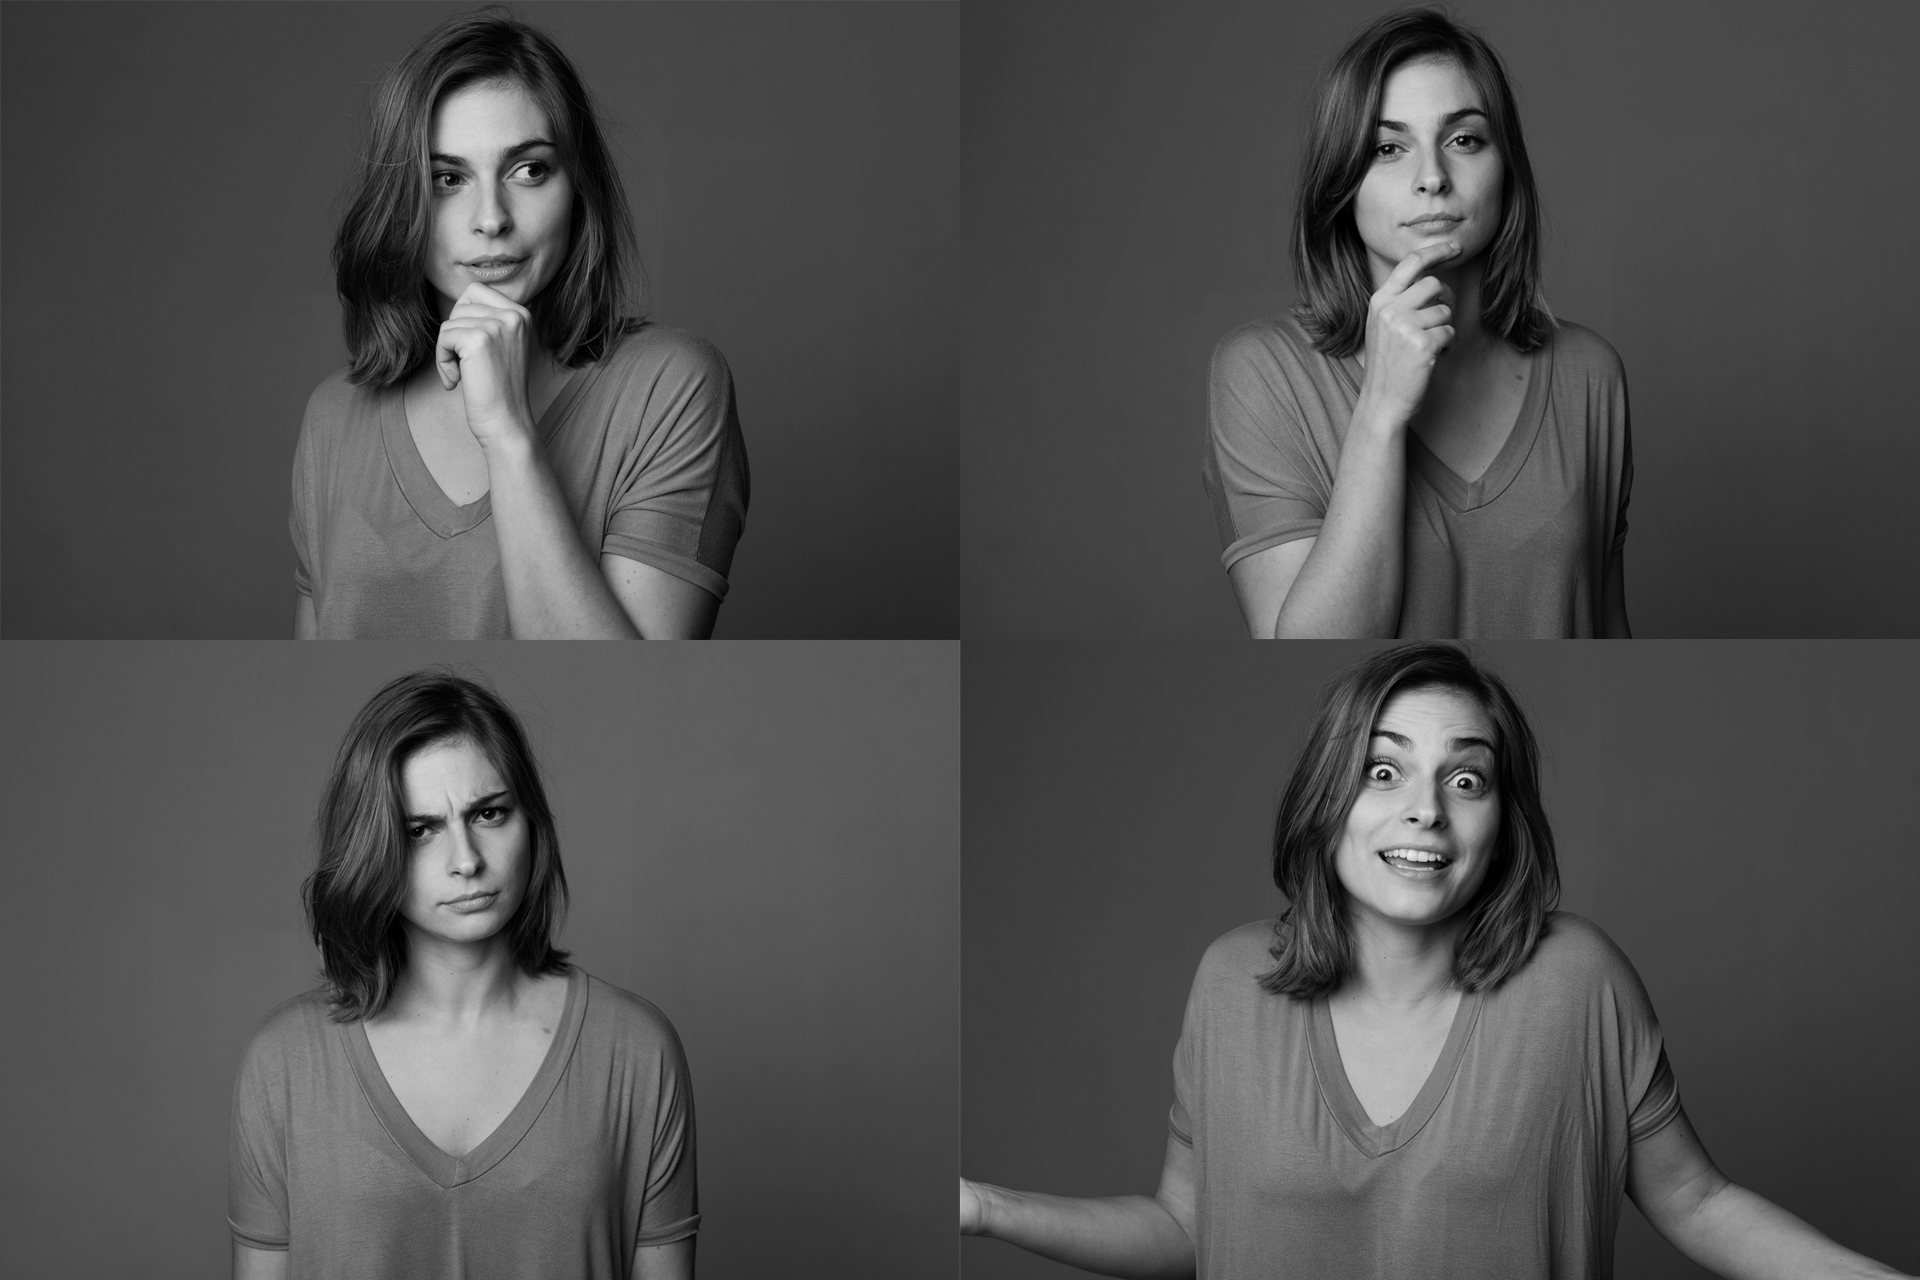 Actress Benedita Pereira looking as clueless as I sometimes feel, when juggling with all the ideas in my mind :)